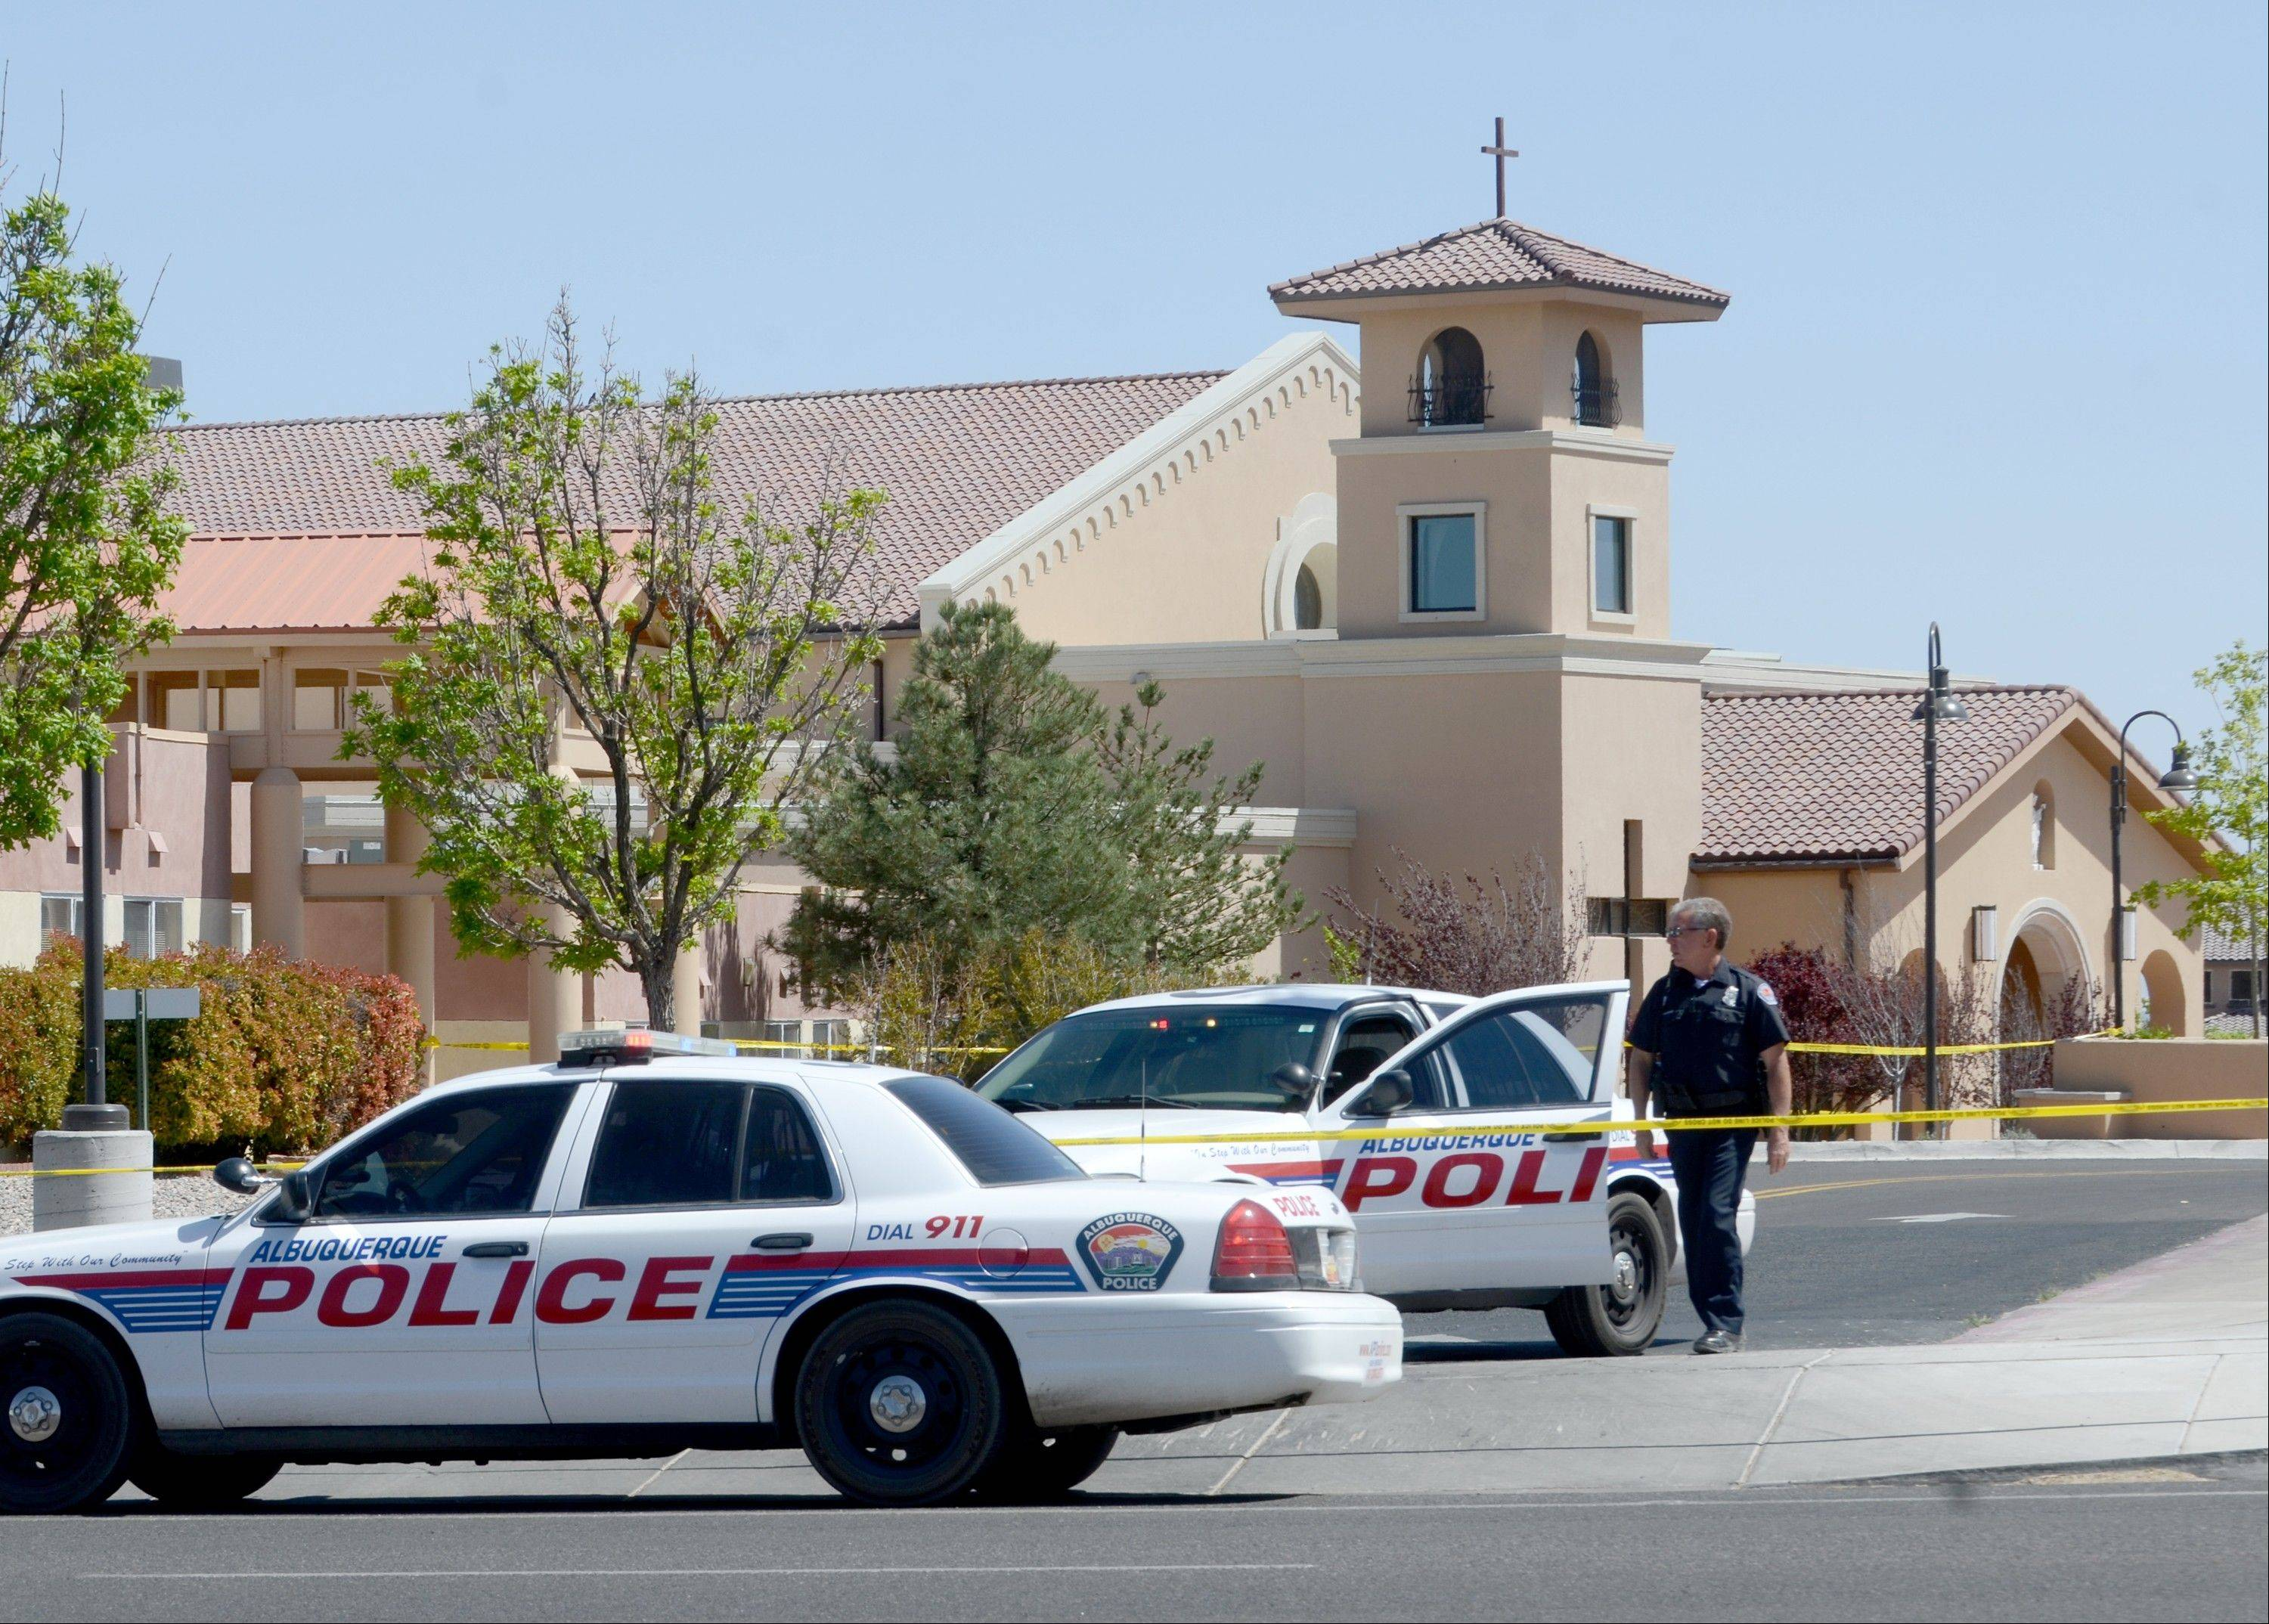 An Albuquerque Police officer walks behind the tape at St. Jude Thaddeus Catholic Church Sunday in Albuquerque, N.M., the scene of a multiple stabbing at the conclusion of morning services. Police say a 24-year-old man stabbed four people at a Catholic church in Albuquerque as a Sunday mass was nearing its end. Police spokesman Robert Gibbs says Lawrence Capener jumped over several pews at church around noon Sunday and walked up to the choir area where he began his attack.